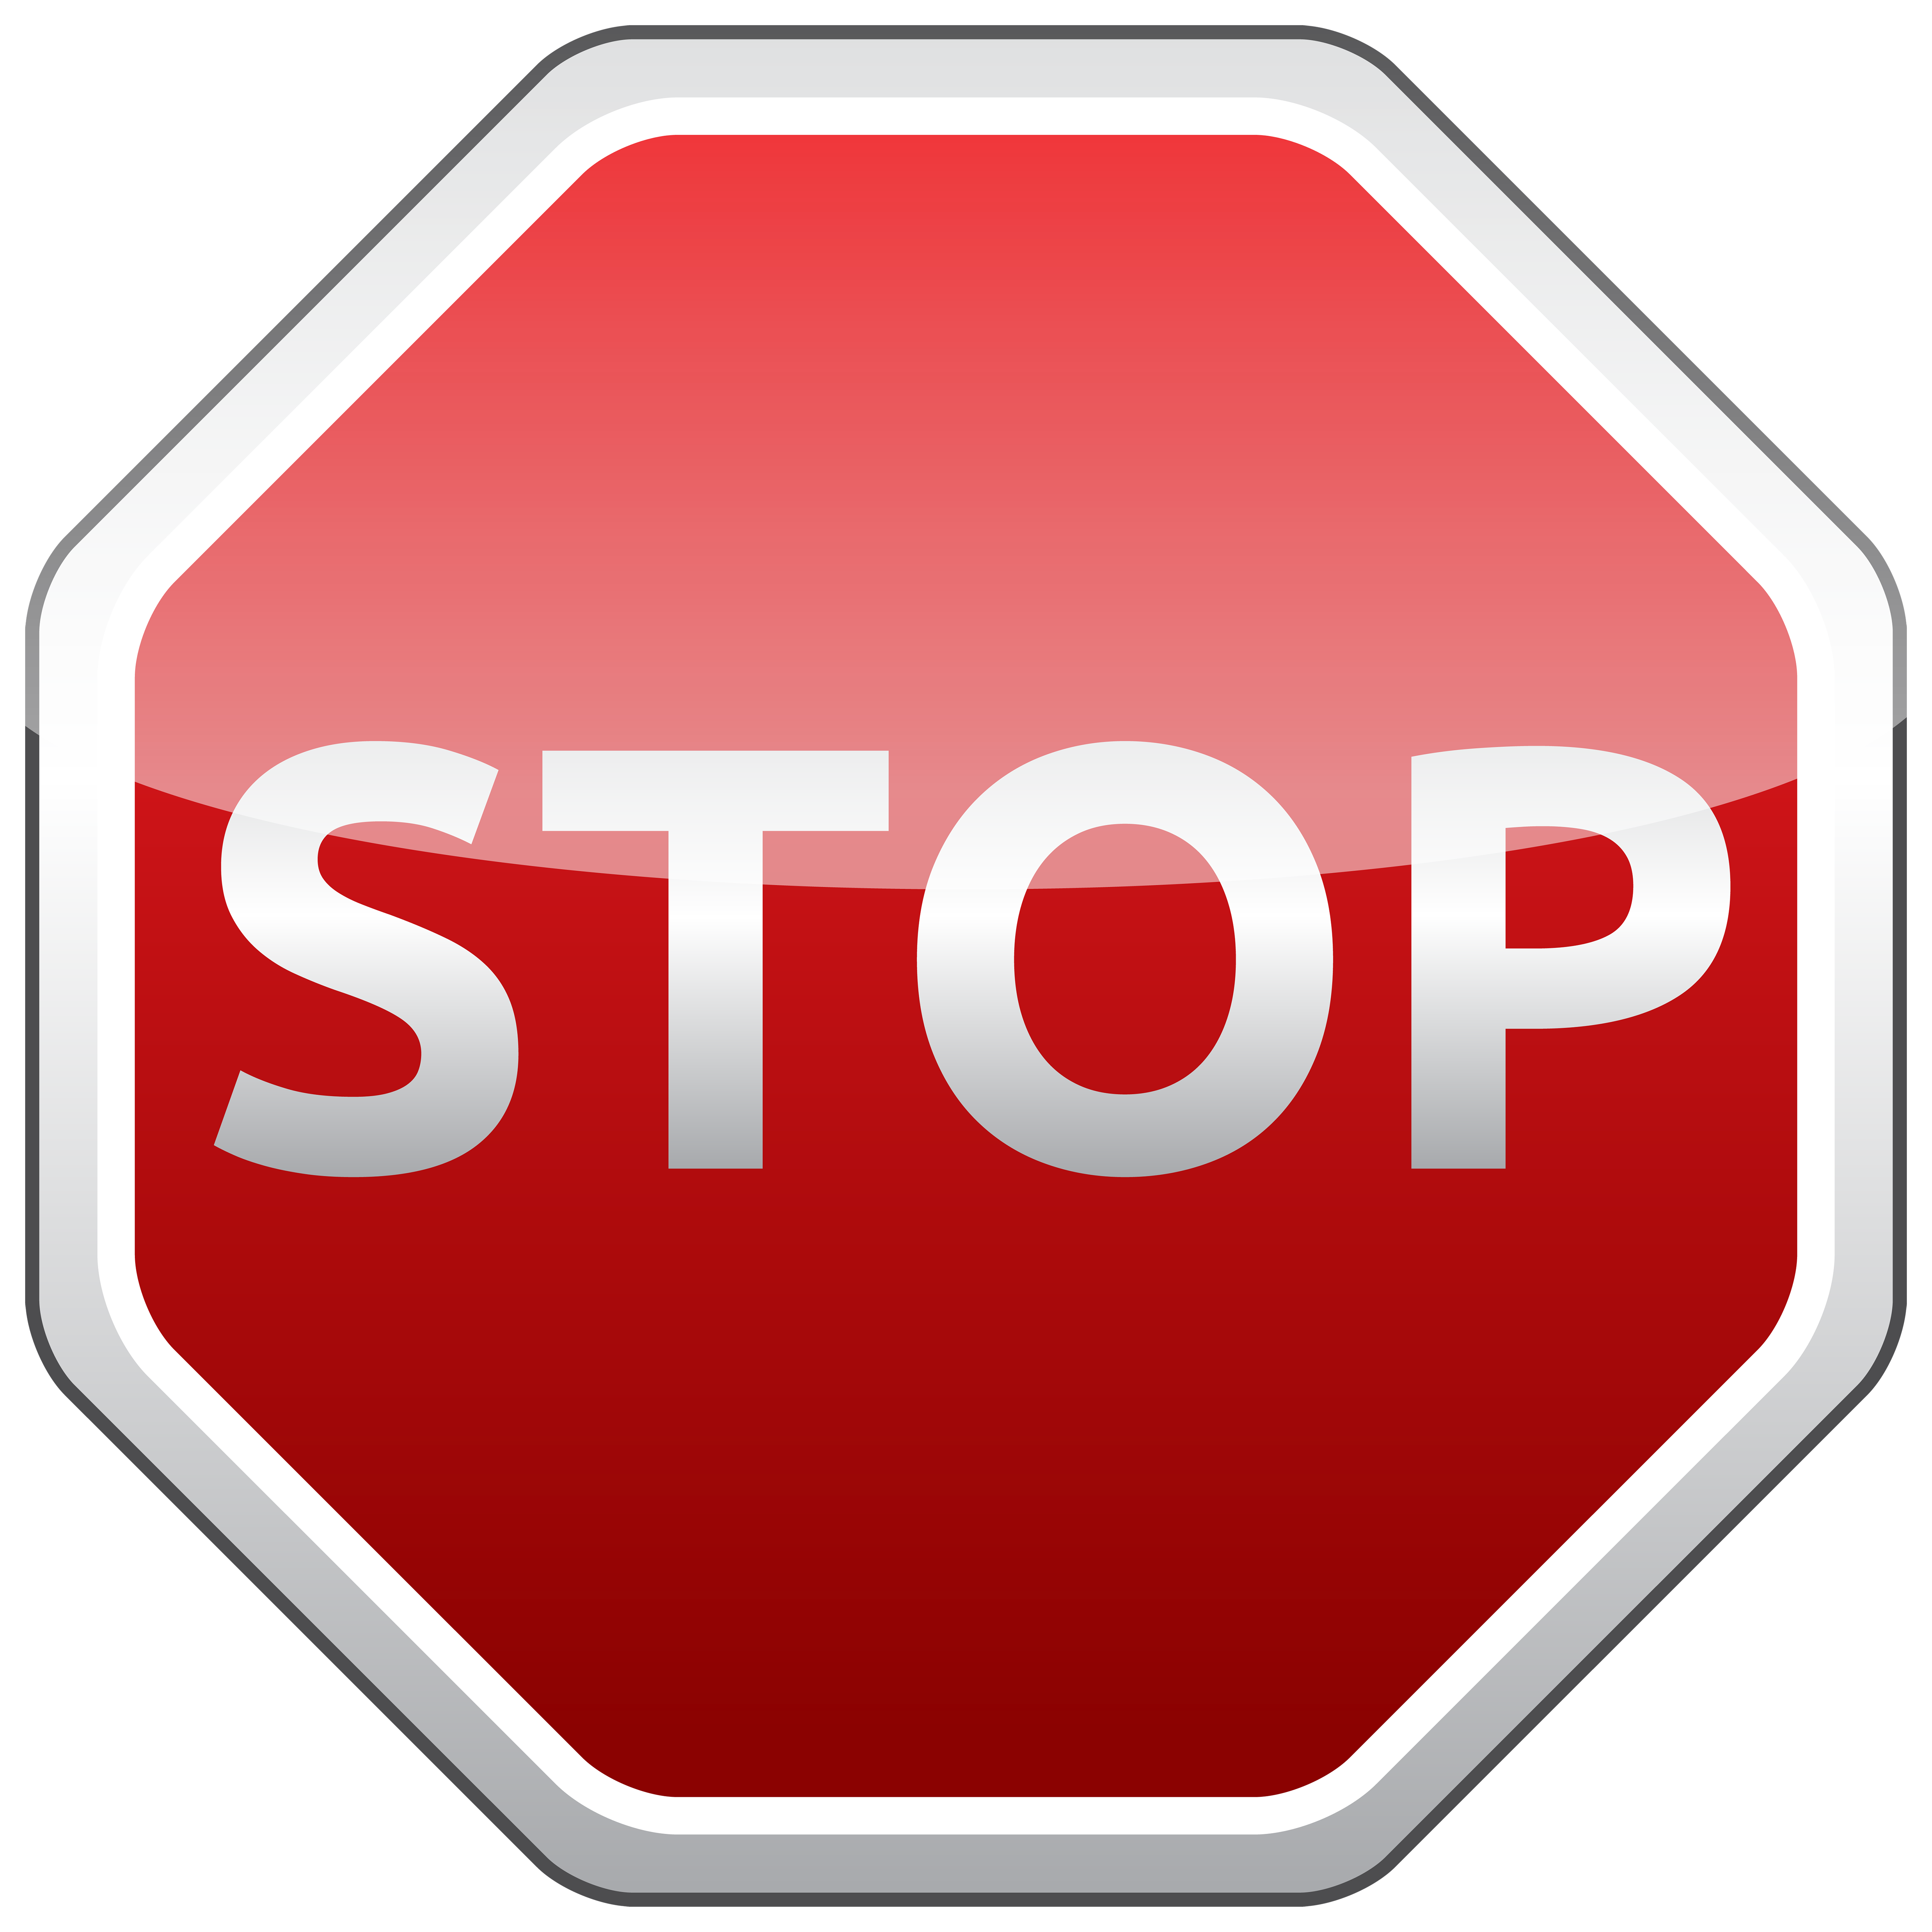 Stop sign png best. Parking lot clipart drawing